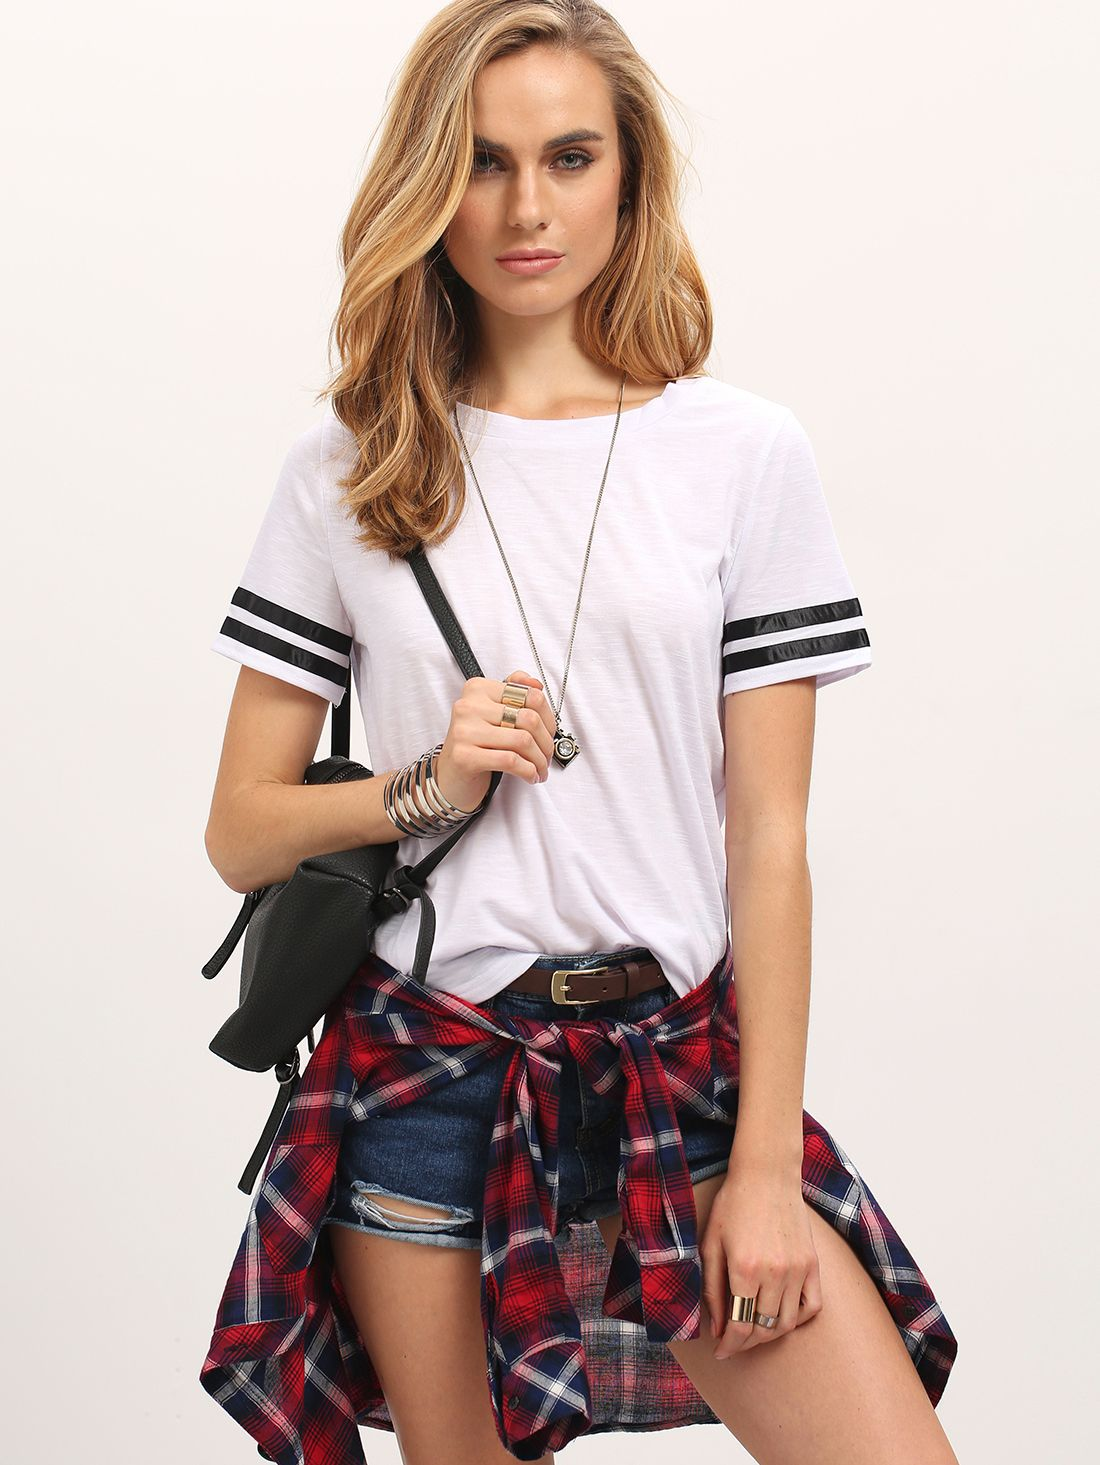 White+Crew+Neck+Black+striped+Sleeve+Casual+T-shirt+12.00